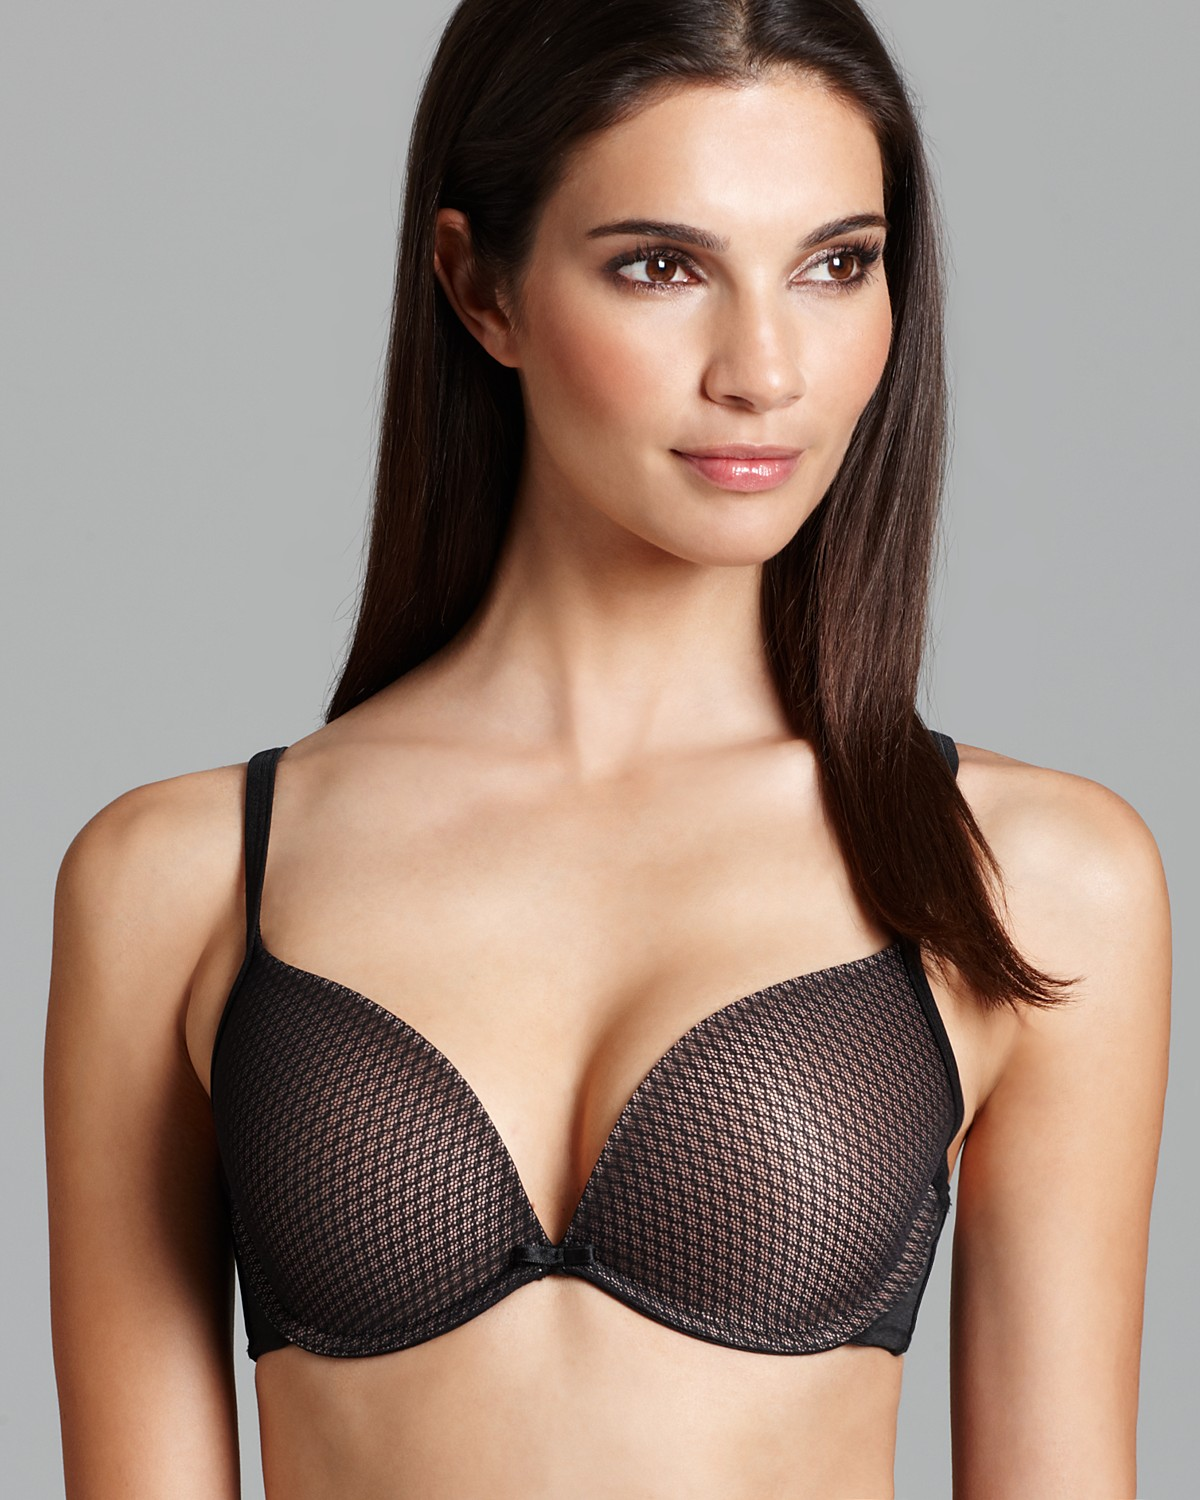 Your bra's band size is the number portion of your bra size. For example, in a bra size 32D, the 32 is the band size. In American lingerie boutiques, department stores, and on bra shopping sites, band sizes typically range from 28 to